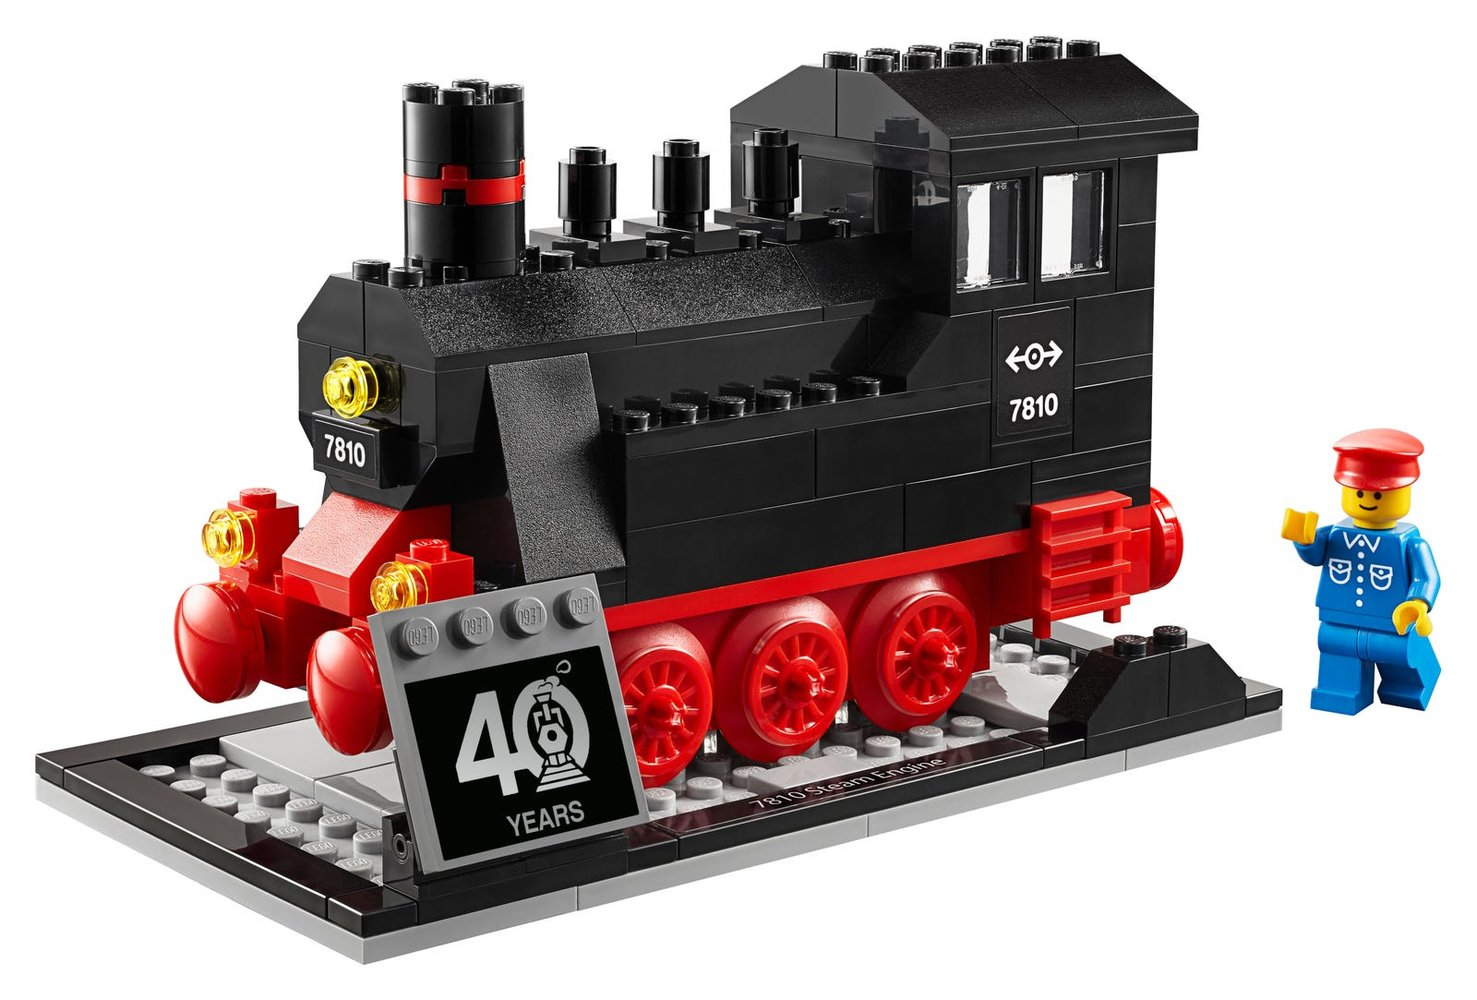 40 Years of LEGO Trains